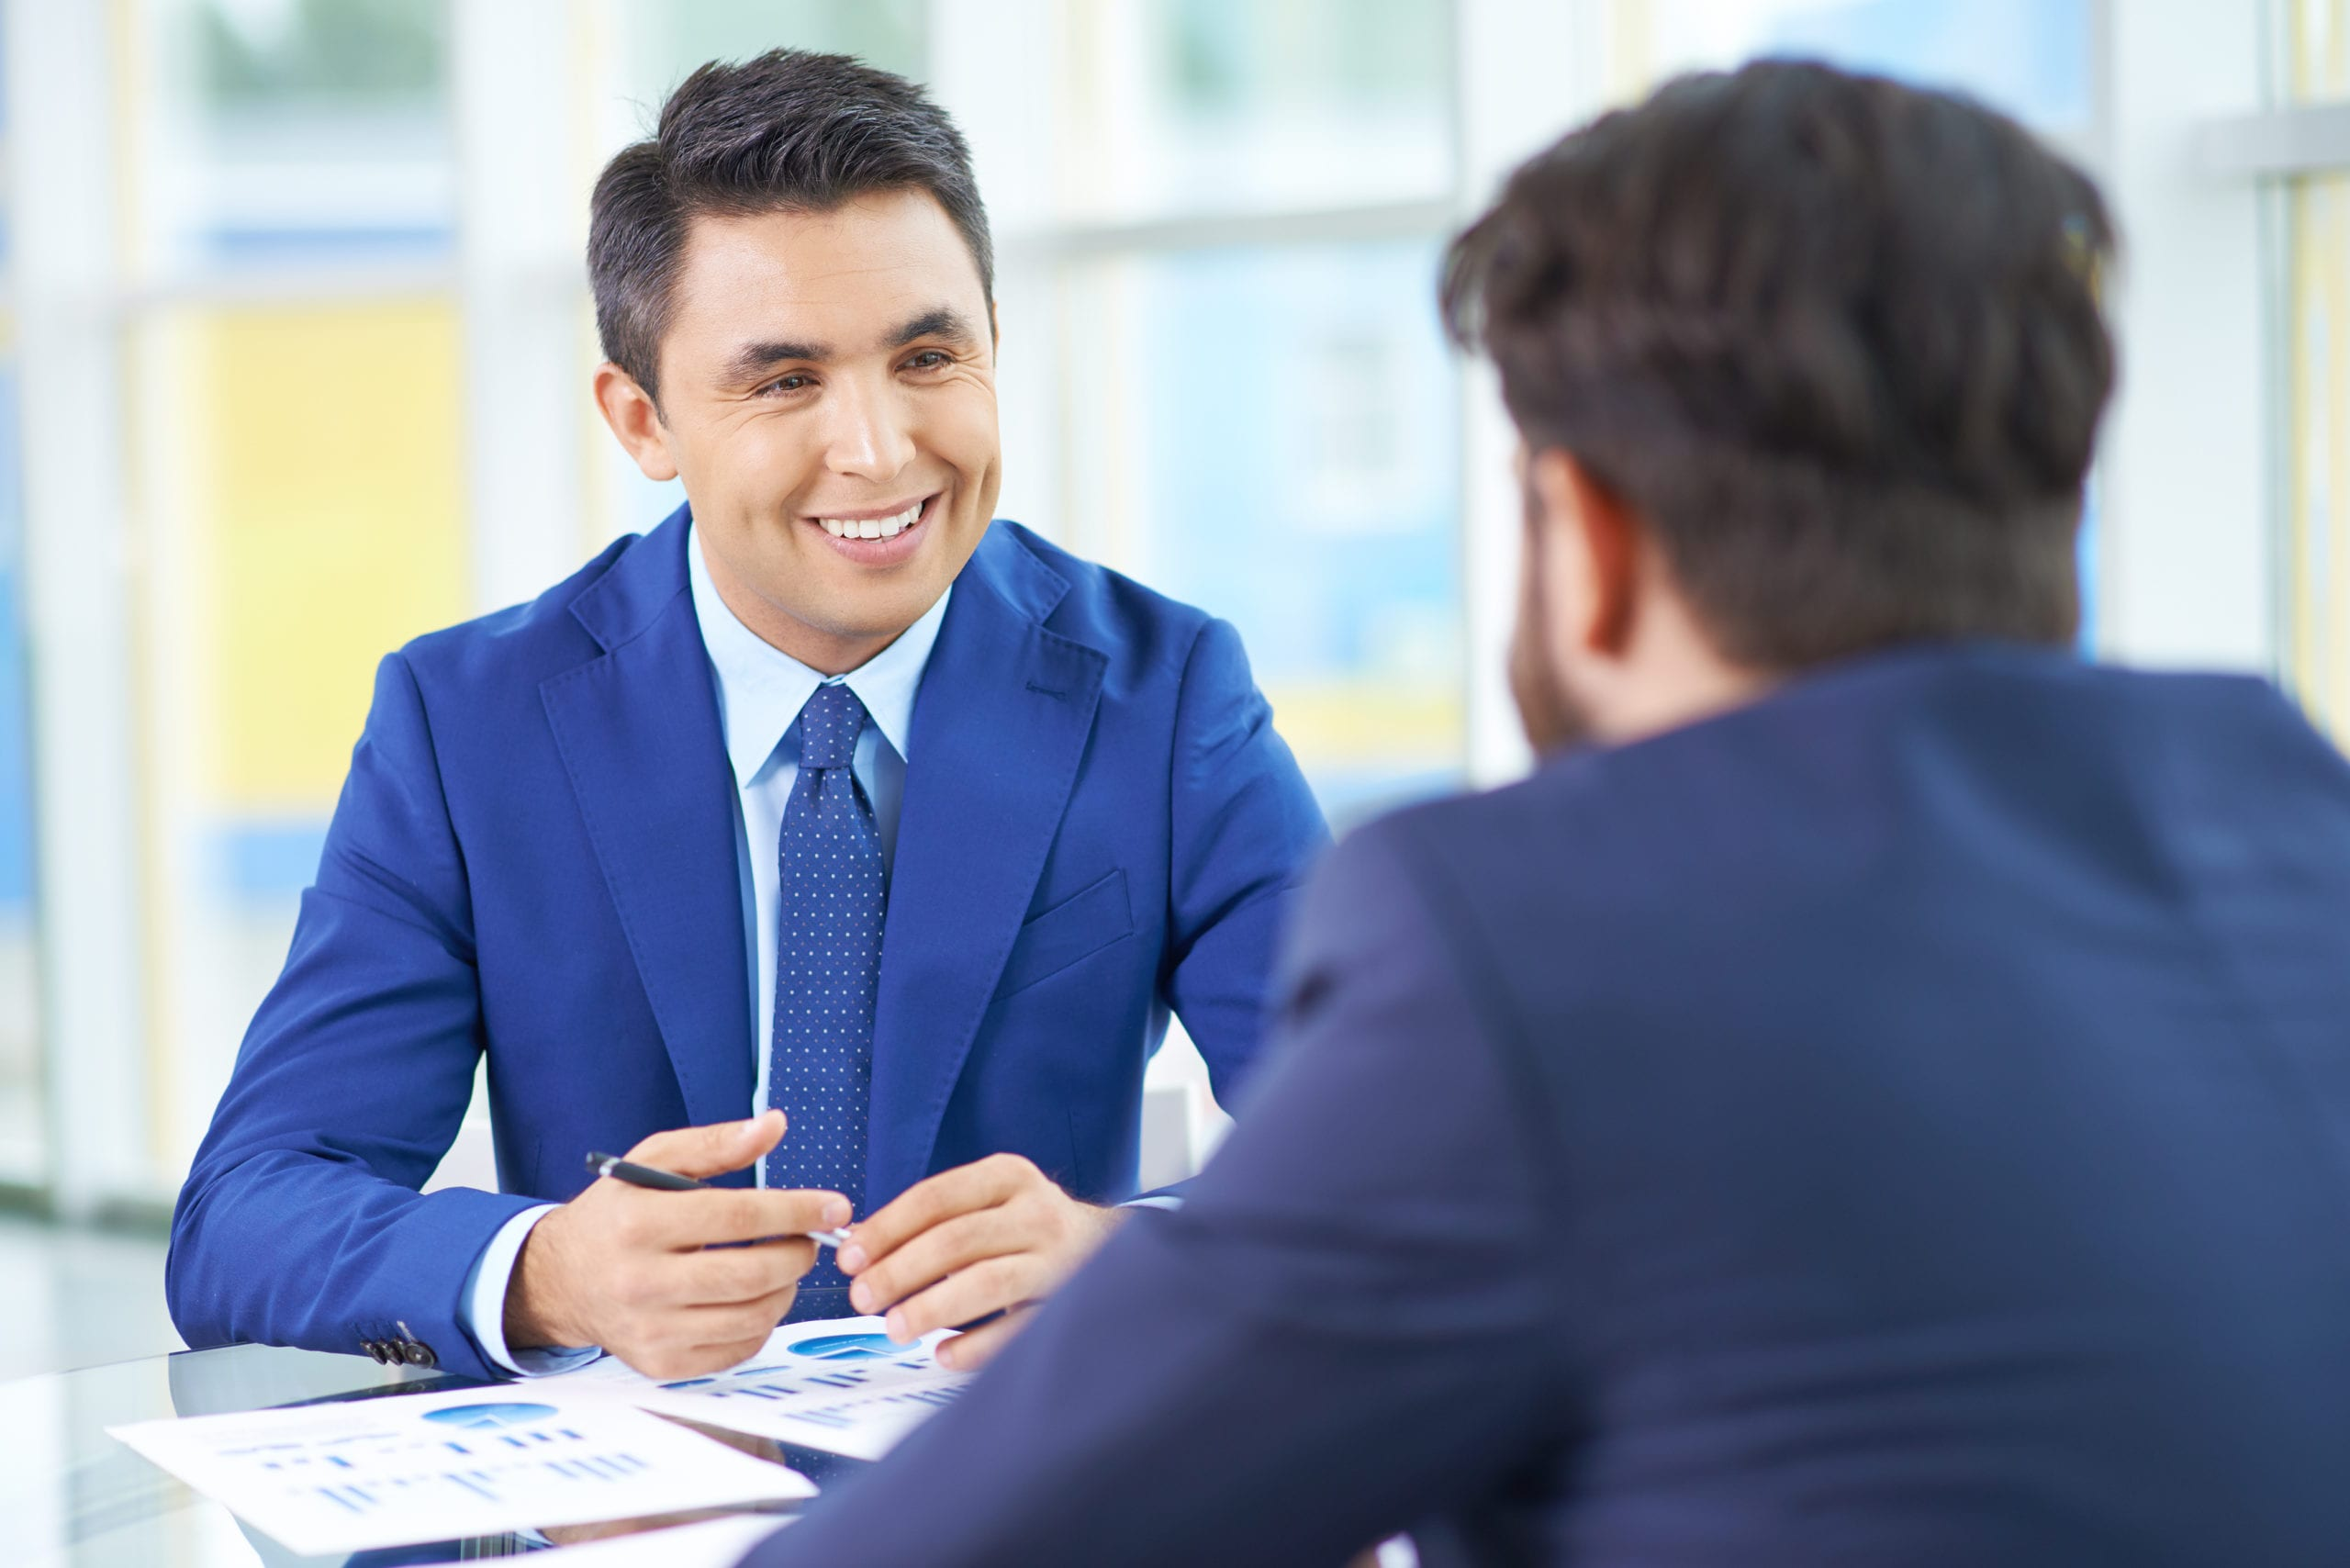 Bain Experience Interview. Picture depicts two men wearing blue business suits in a meeting.